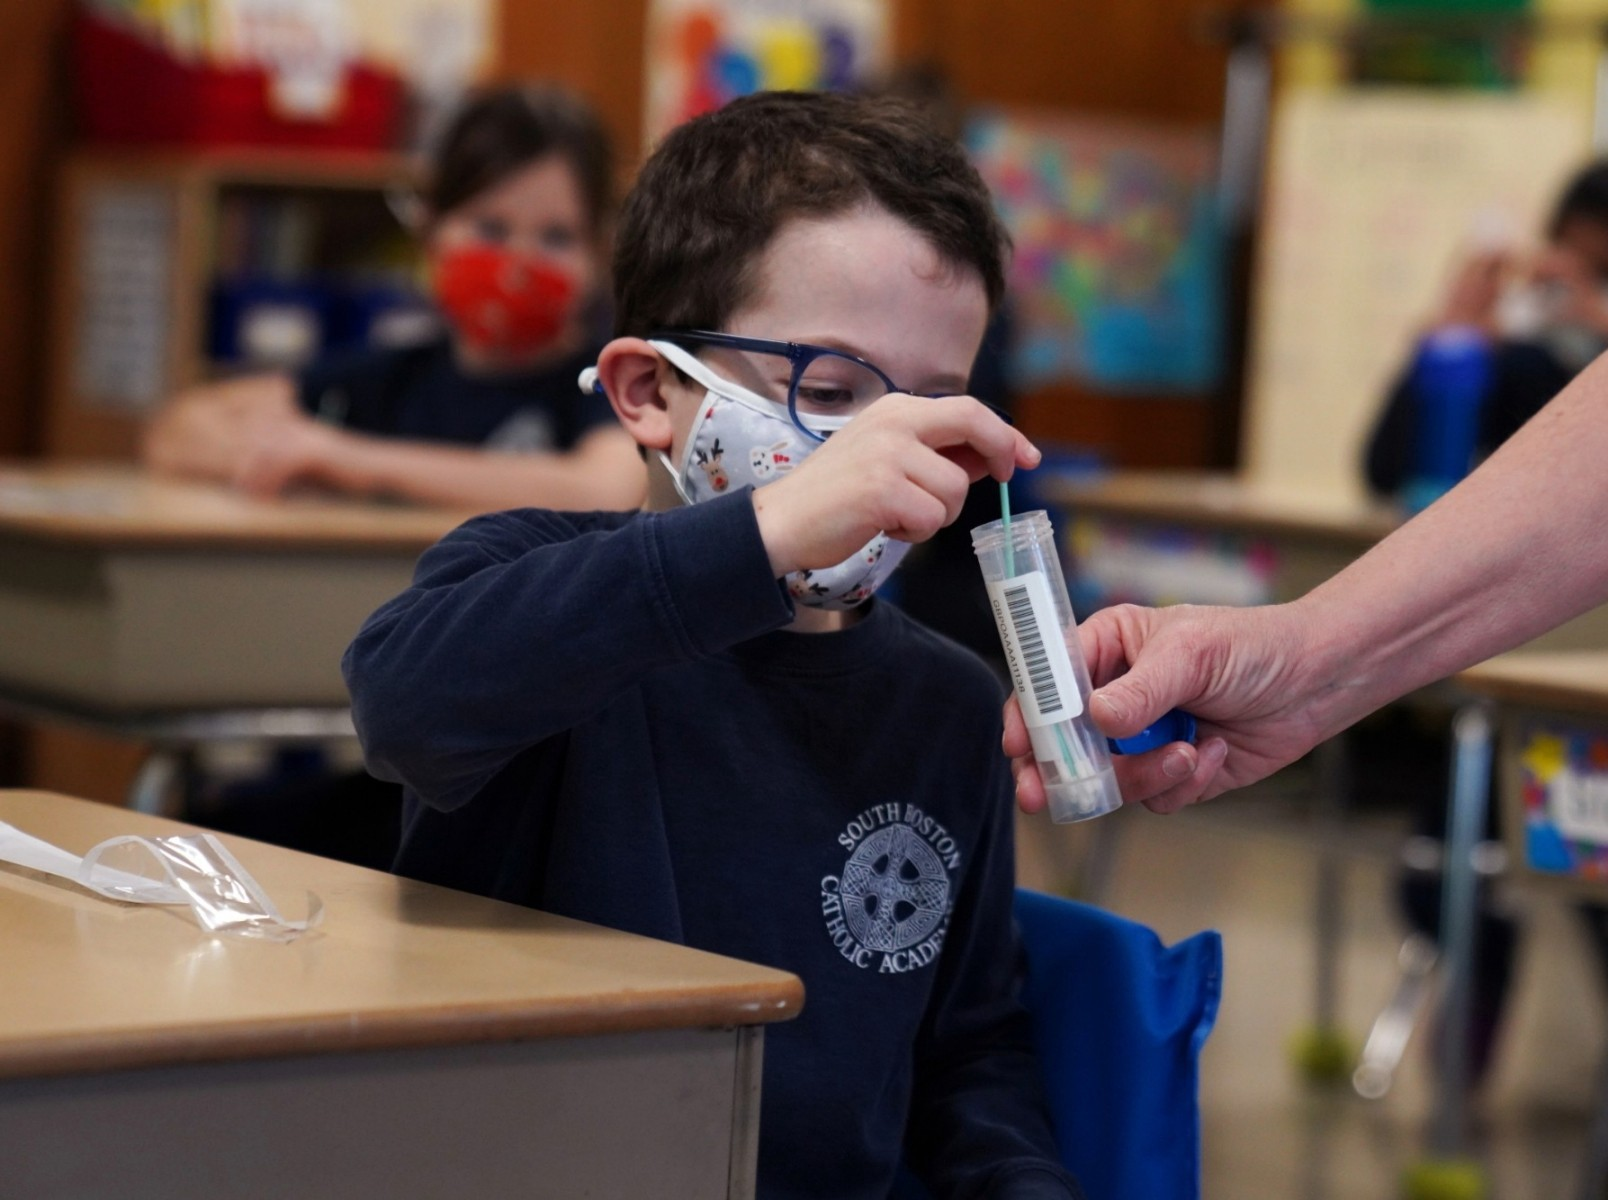 A child places his test swab in a vial at South Boston Catholic Academy in Boston, Massachusetts, January 28, 2021. Photo by Allison Dinner/Reuters